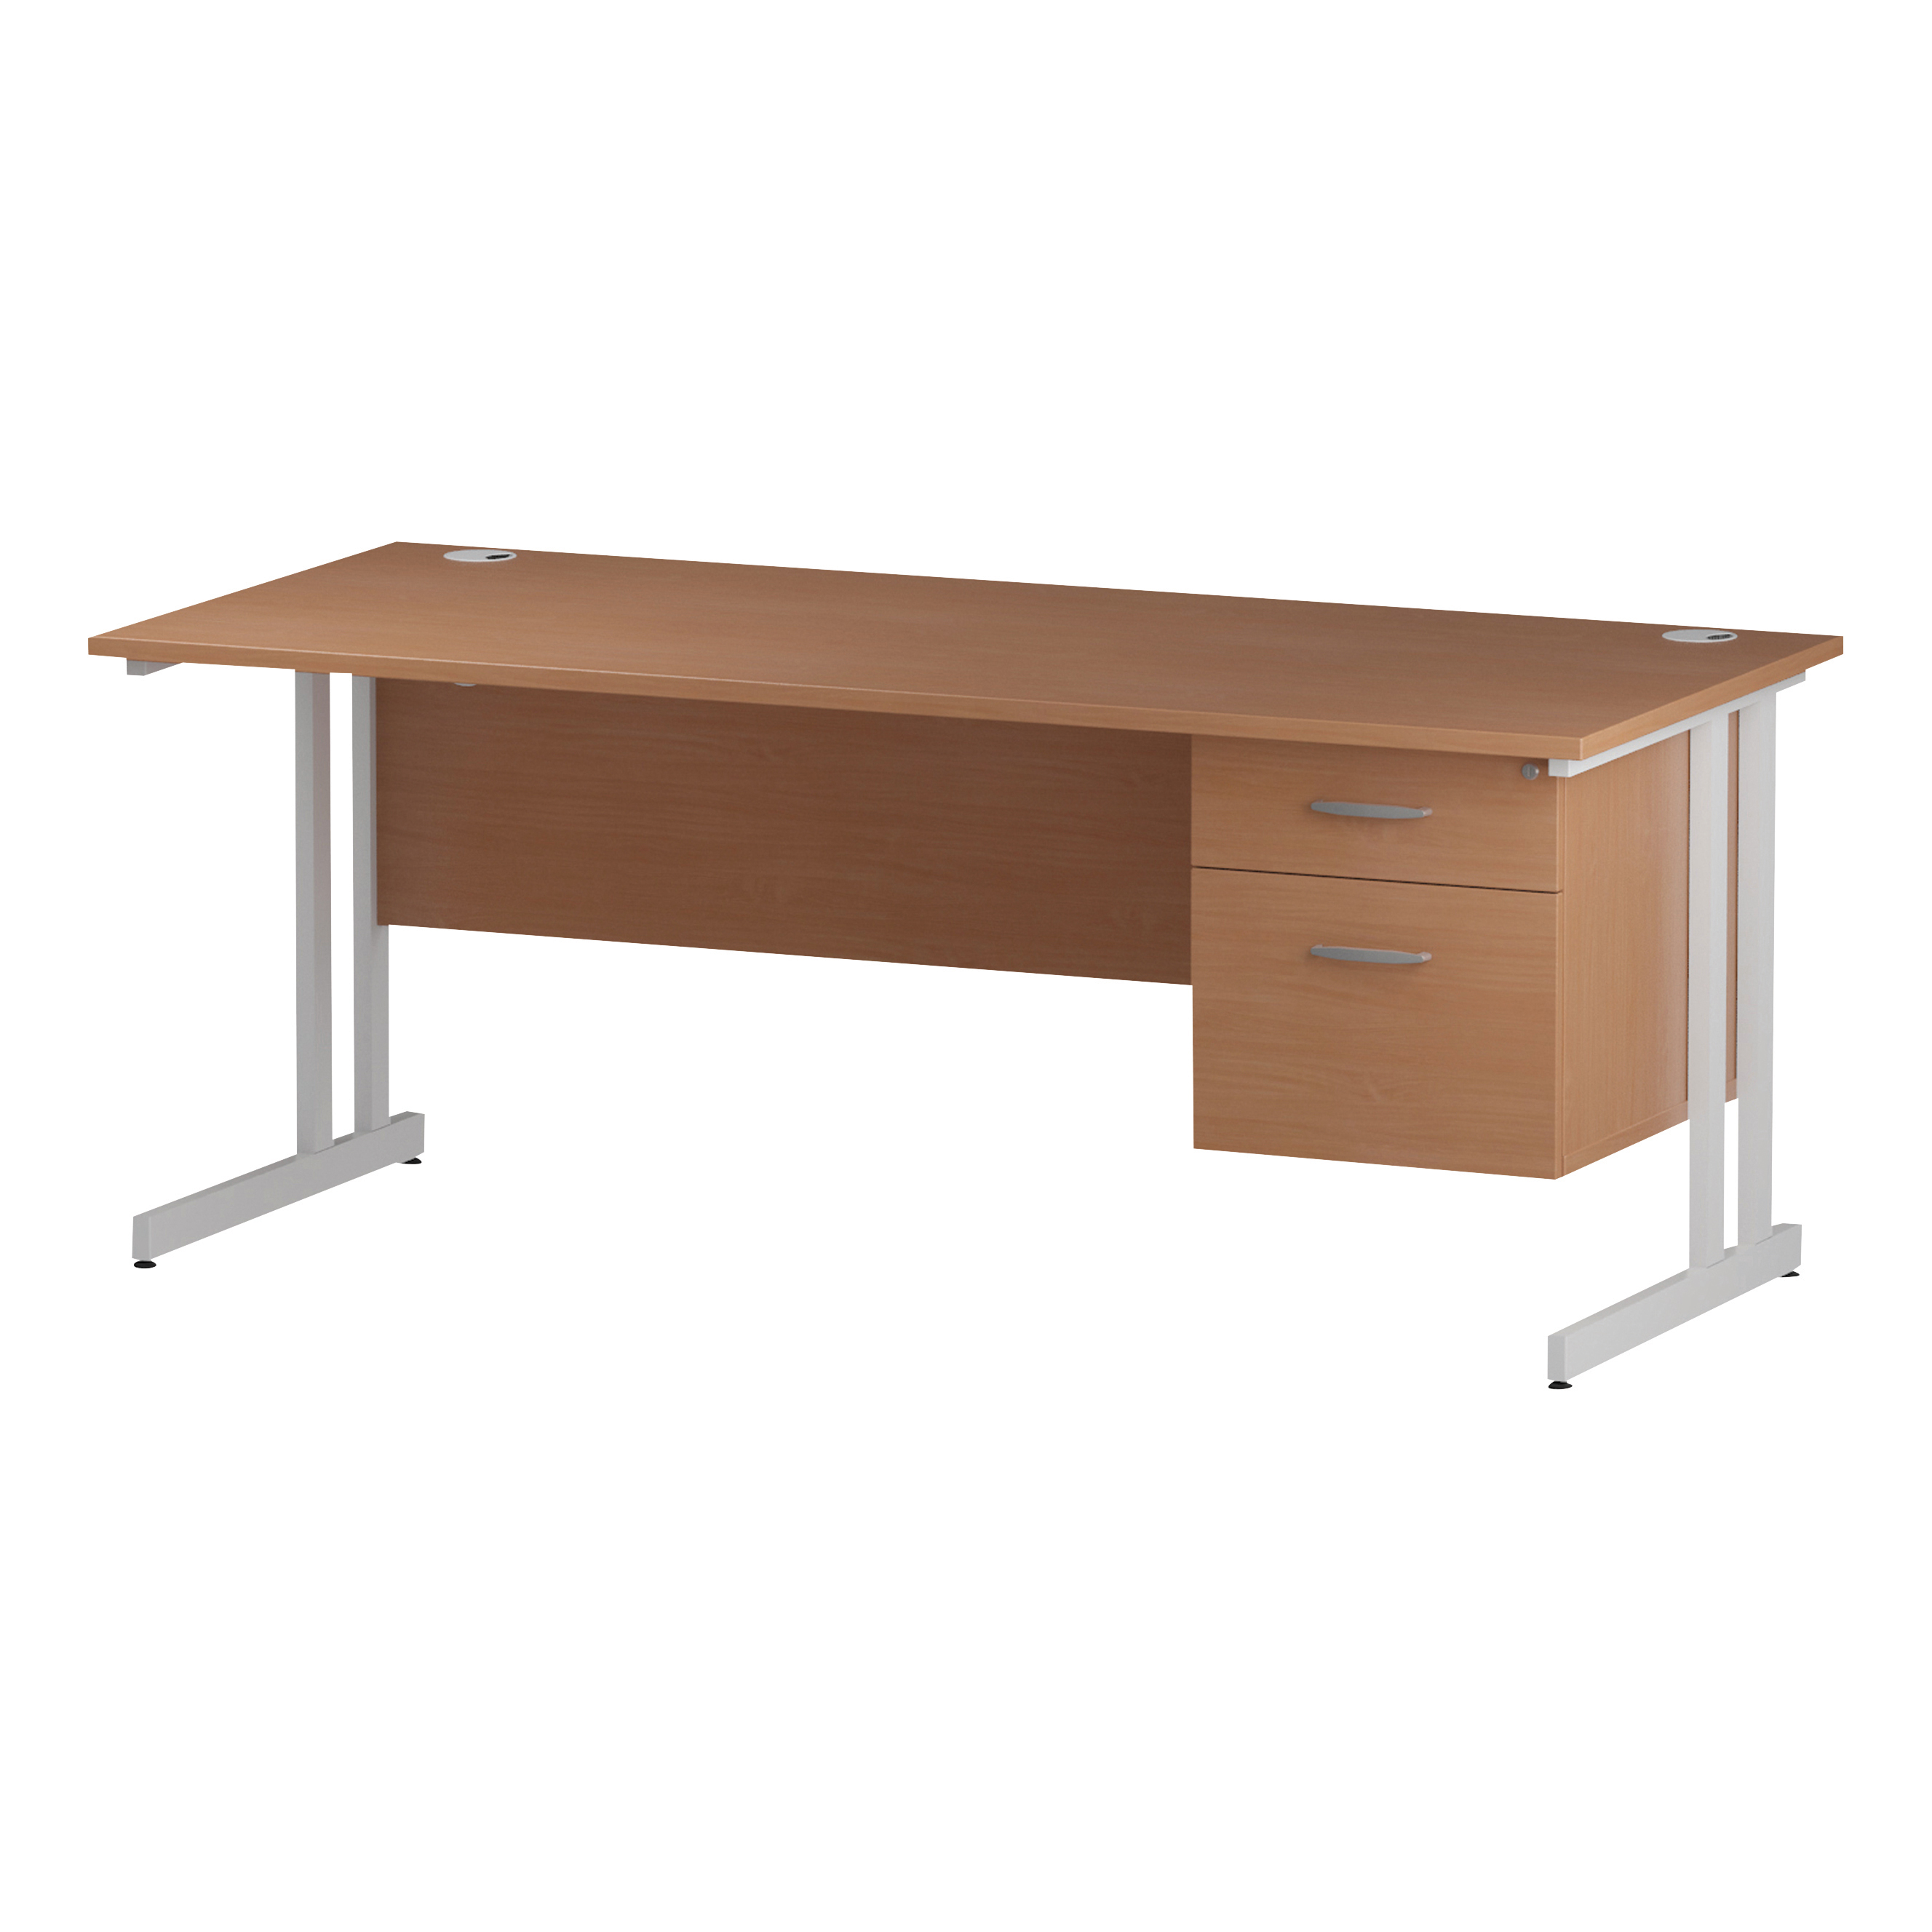 Trexus Rectangular Desk White Cantilever Leg 1800x800mm Fixed Pedestal 2 Drawers Beech Ref I001695